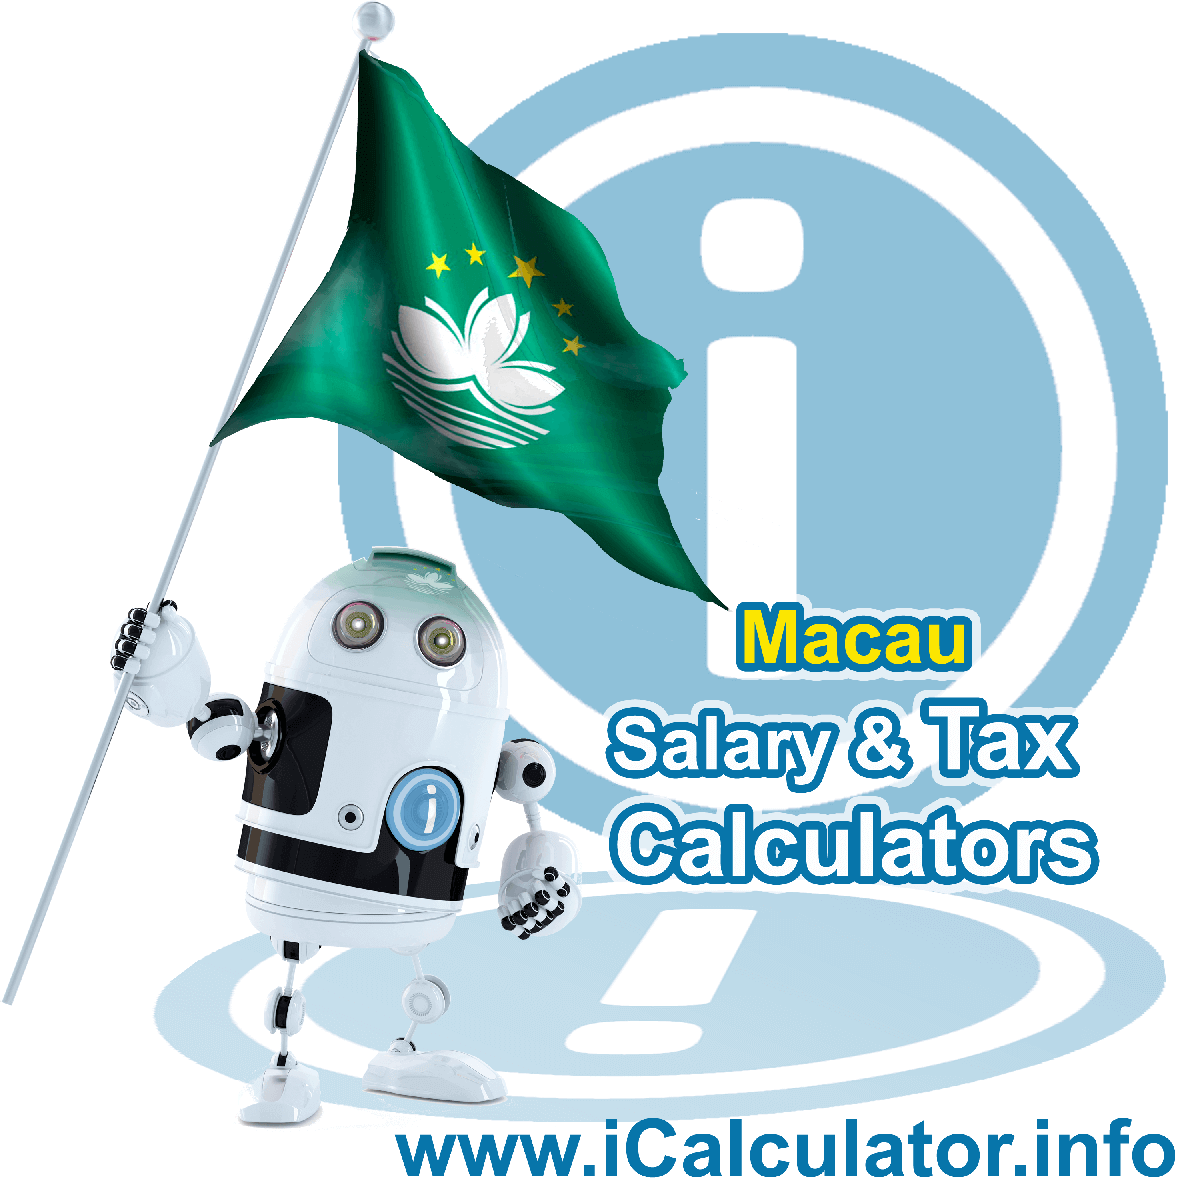 Macao Wage Calculator. This image shows the Macao flag and information relating to the tax formula for the Macao Tax Calculator